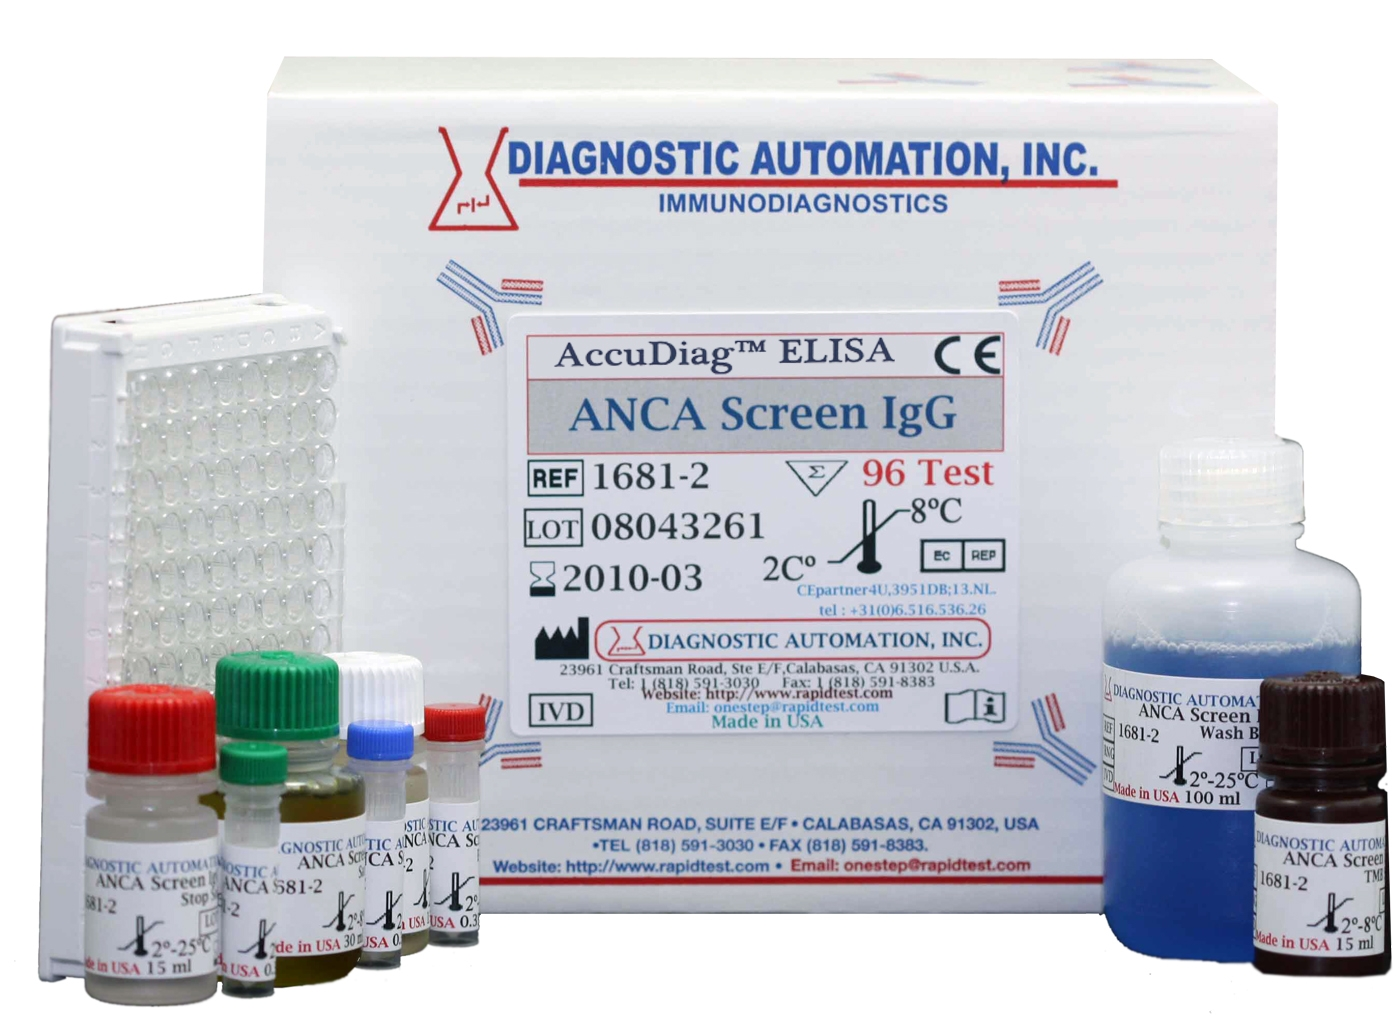 ANCA screen IgG ELISA kit